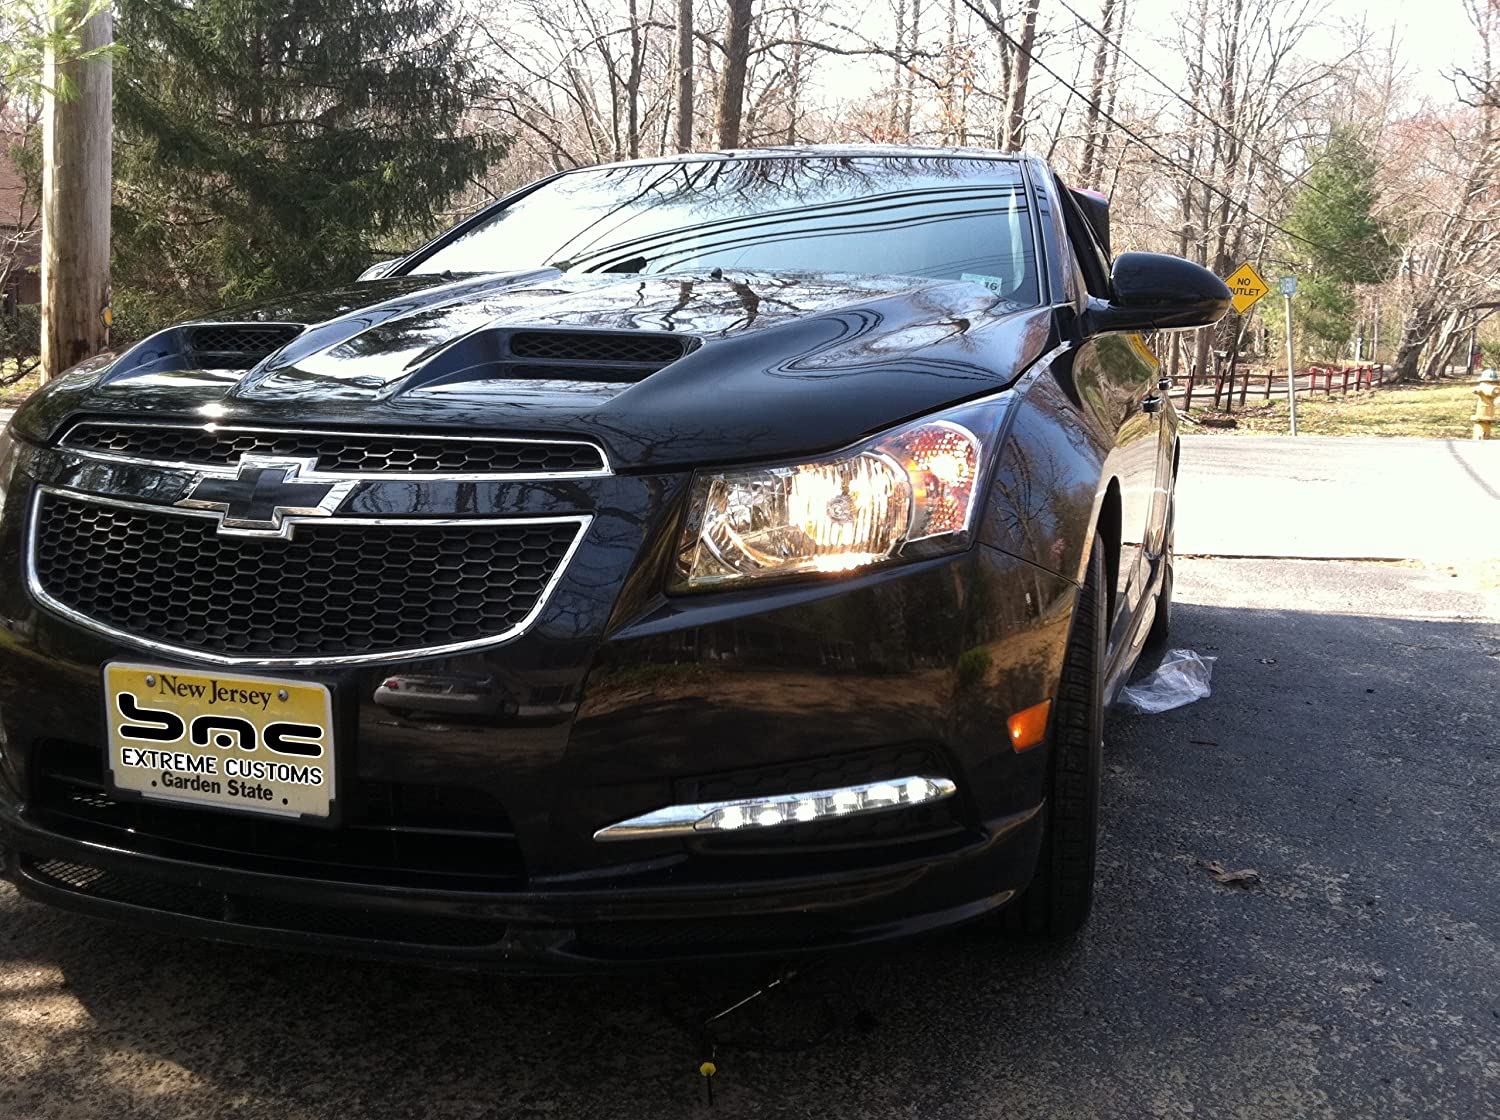 Cruze chevy cruze 2012 : Amazon.com: 2011-2013 Chevy Cruze LED Long Chrome Fog Daytime ...